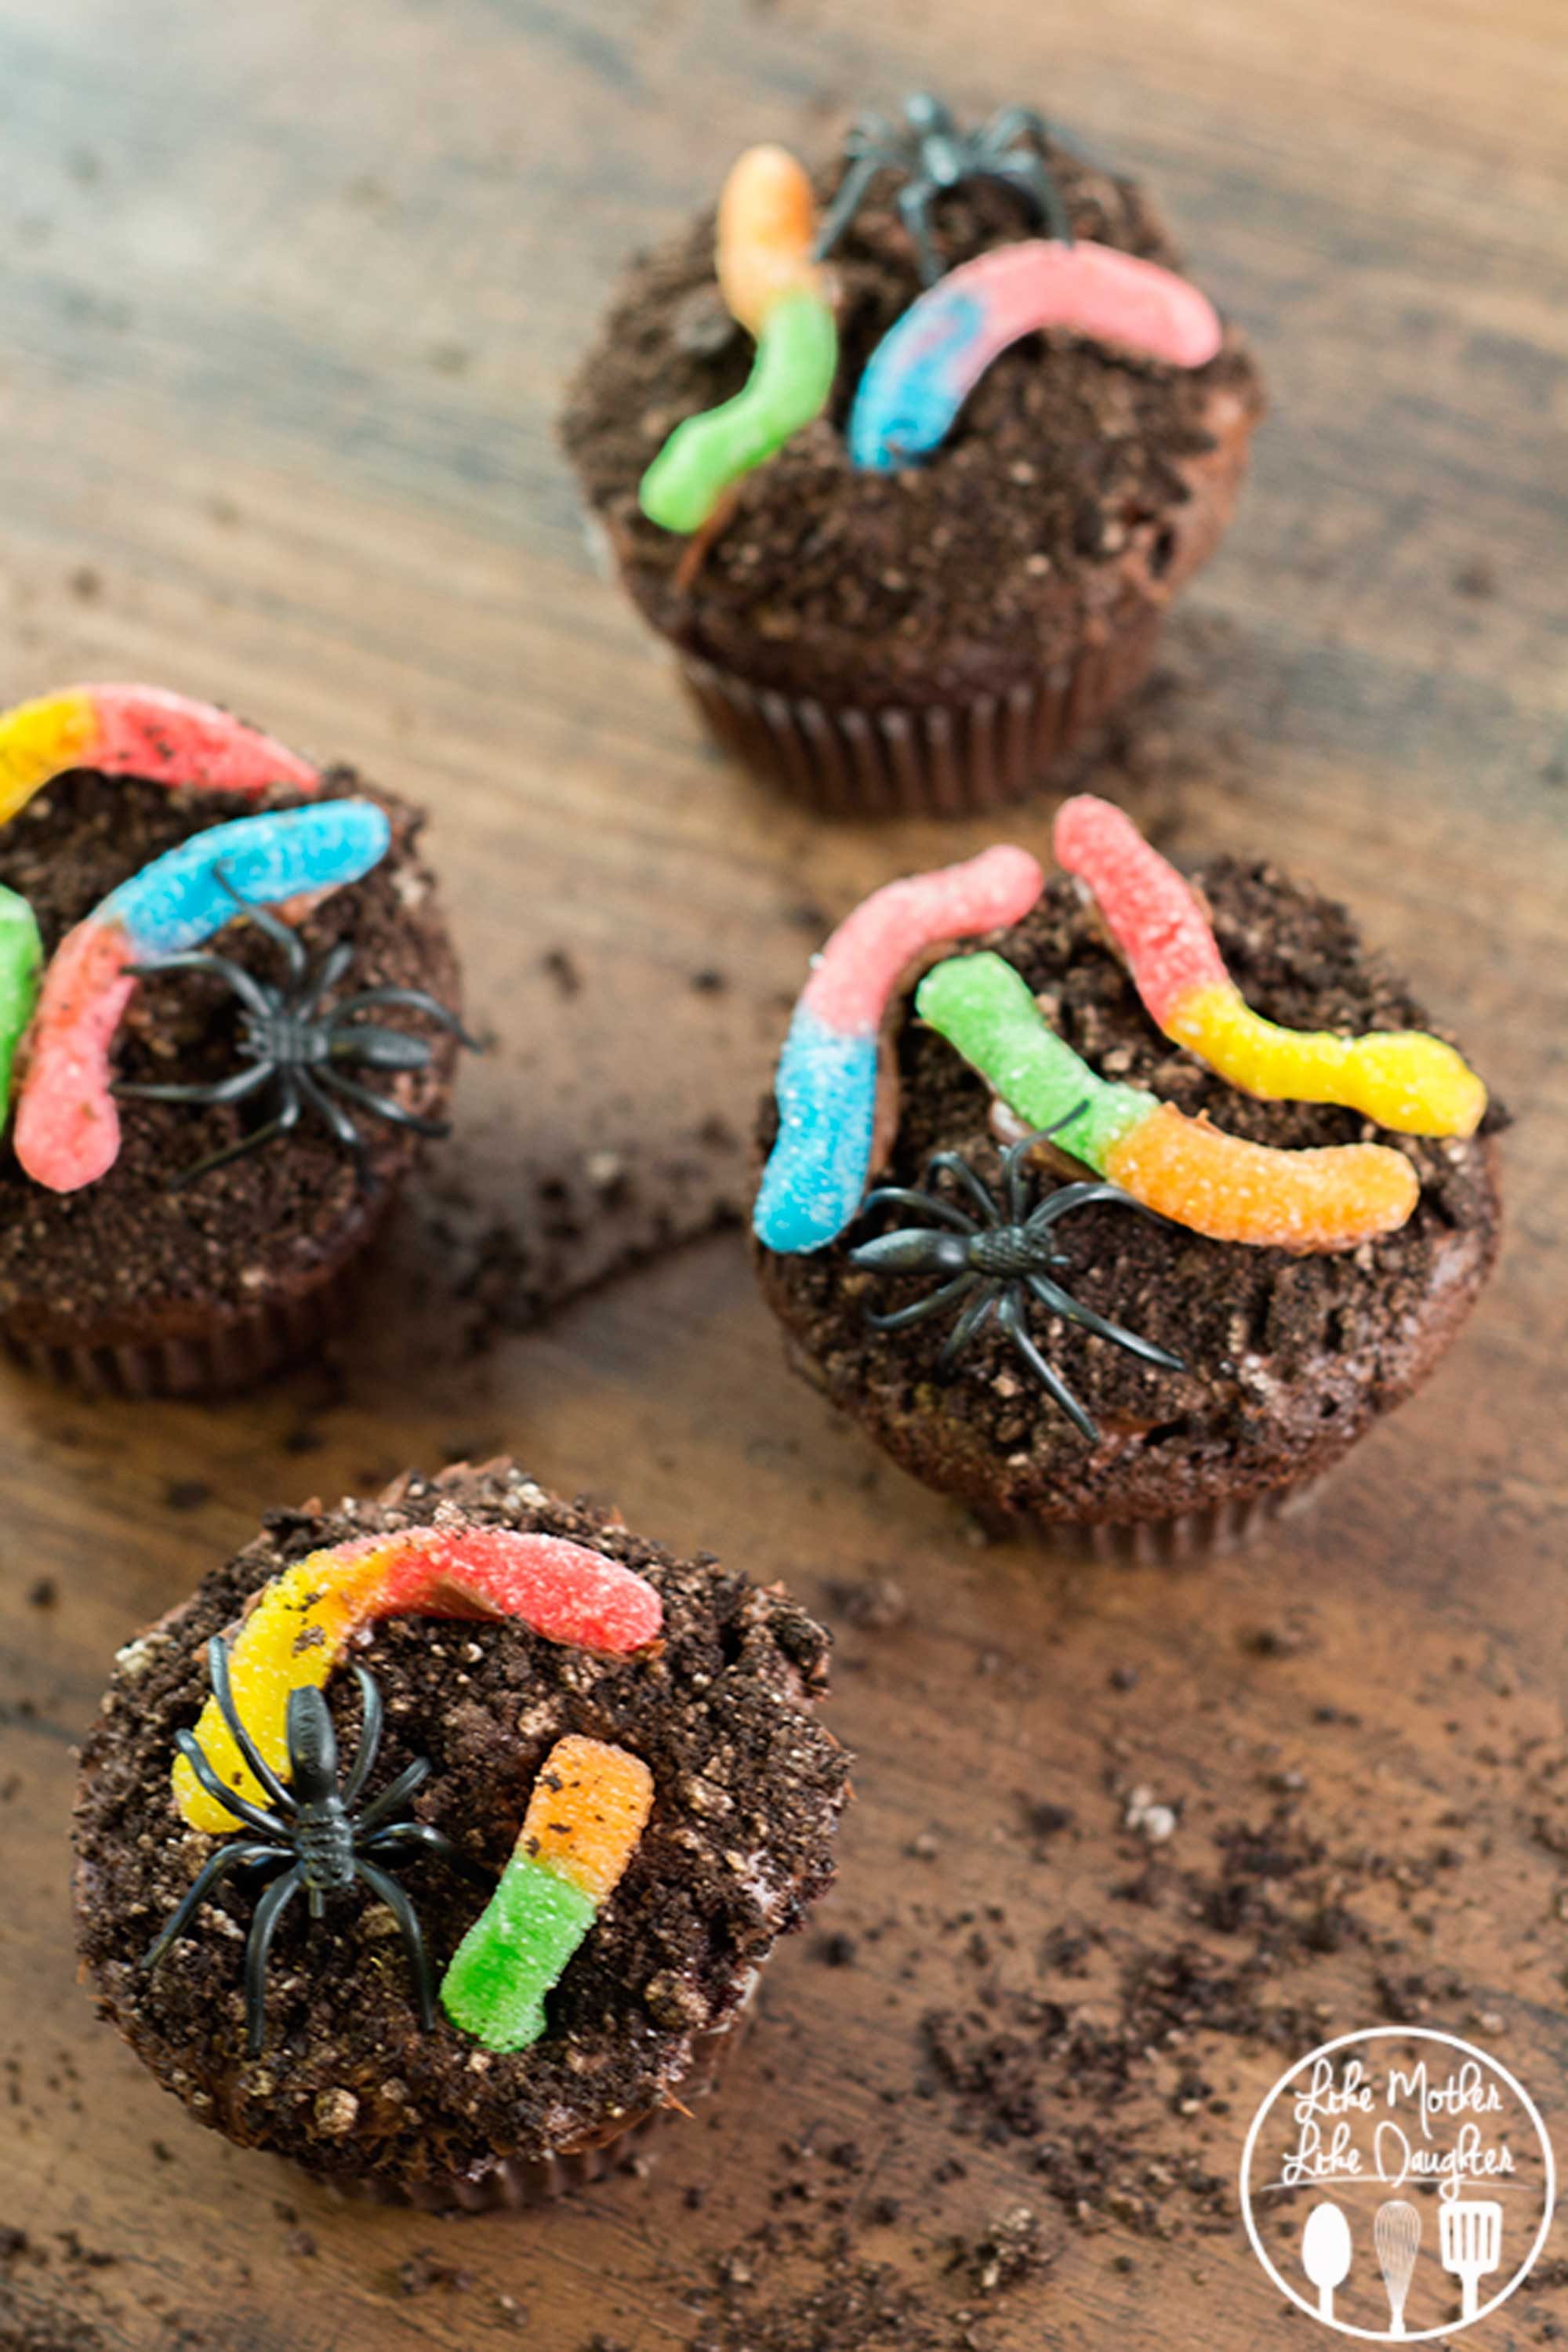 30 halloween cupcake ideas easy recipes for cute halloween cupcakes - Cupcake Decorations For Halloween